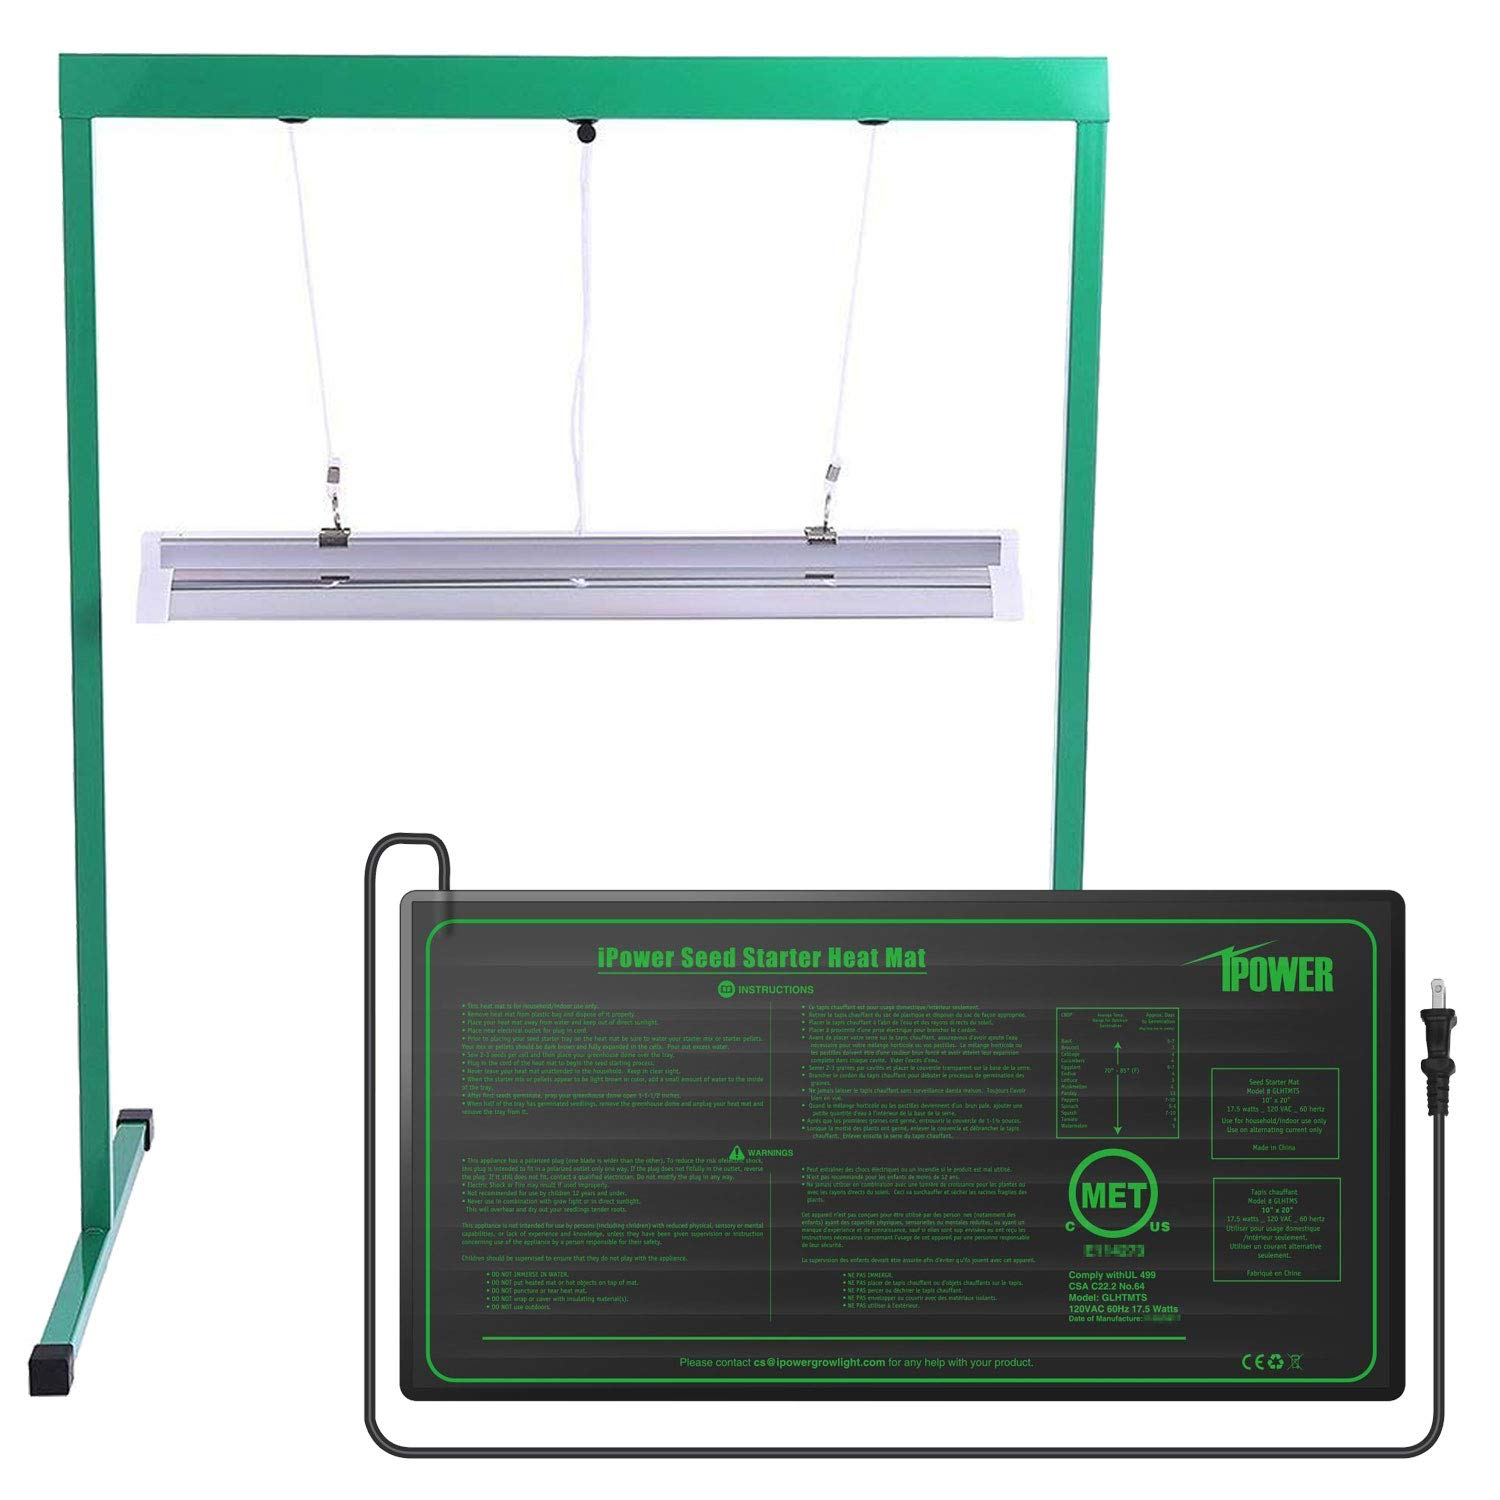 iPower GLSTNDT52FHTMTS 24W 2 Feet T5 Fluorescent Grow Light Stand Rack (6400k) and 10'' x 20.5'' Hydroponic Seedling Heat Mat Combo Set for Seed Germination, Green